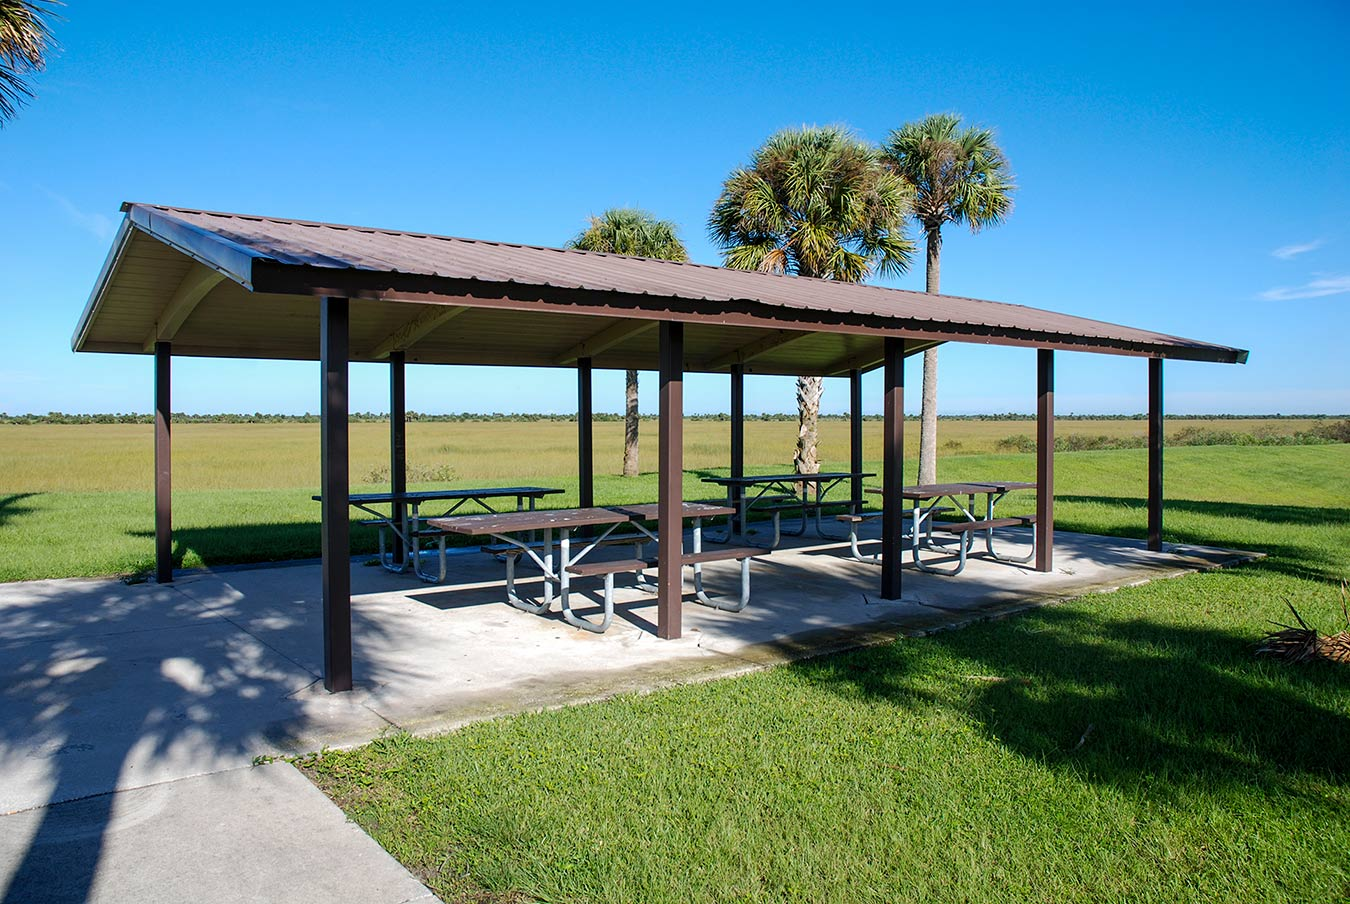 A picnic area offers a spot where visitors can enjoy the vista and some shade.